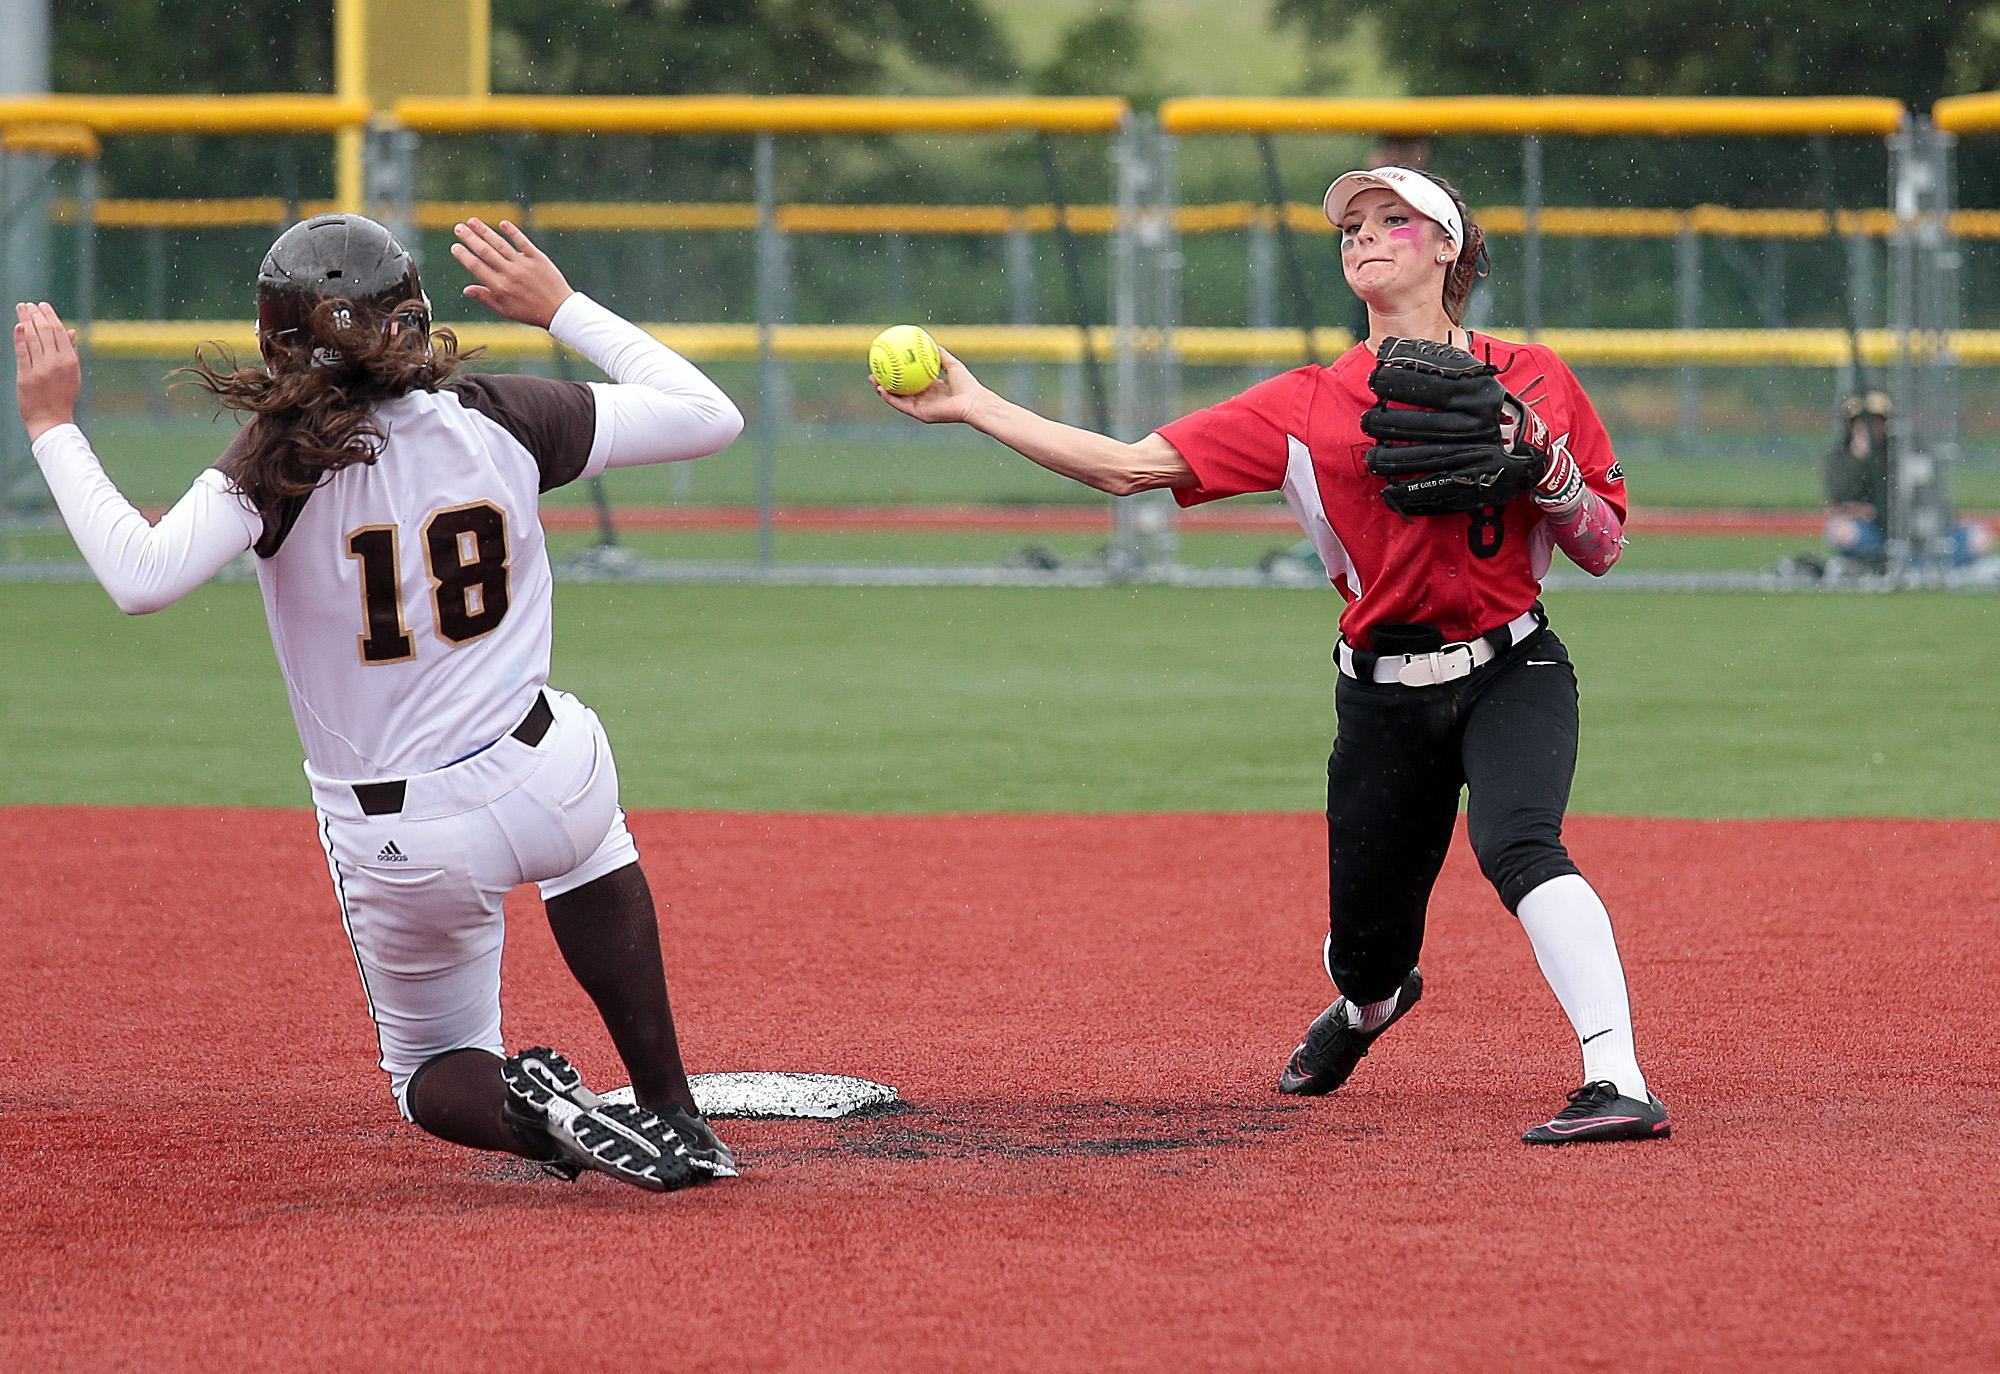 Southern Oregon University senior Kelsey Randall attempts to turn the double play over sliding St. Francis base runner Hannah Santay at US Cellular Fields on Wednesday.[PHOTO BY:  LARRY STAUTH JR]